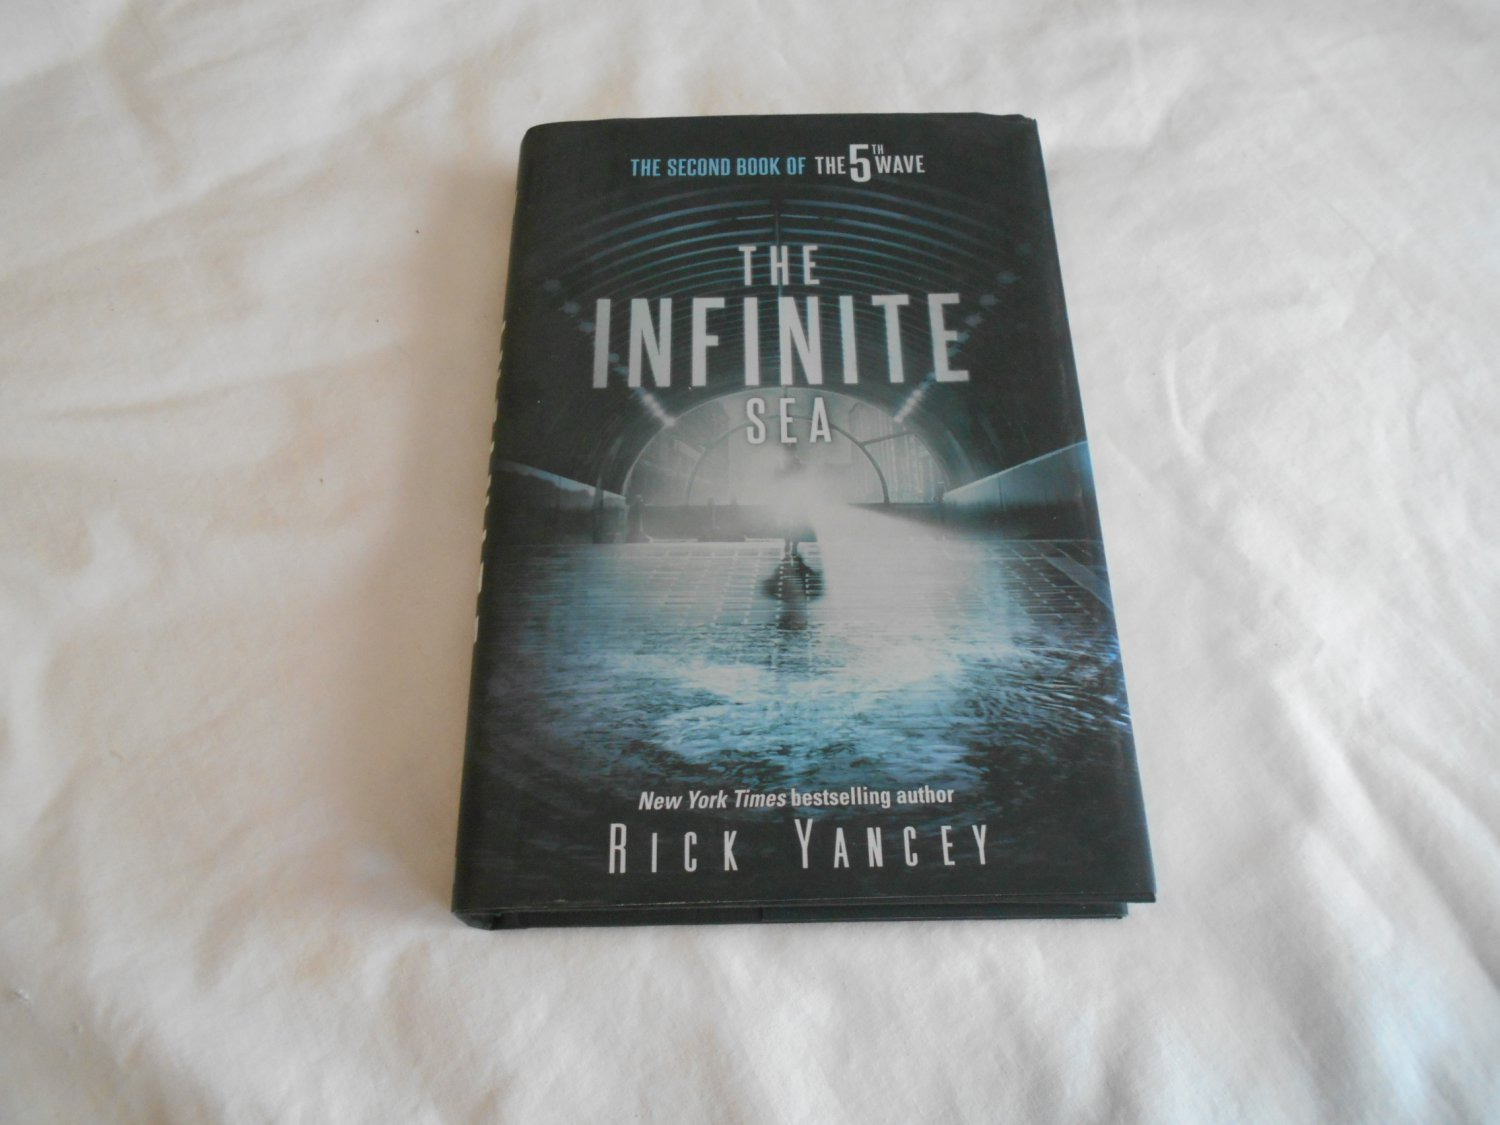 The Infinite Sea by Rick Yancey (2014) (B28) The 5th Wave #2, Science Fiction, Young Adult